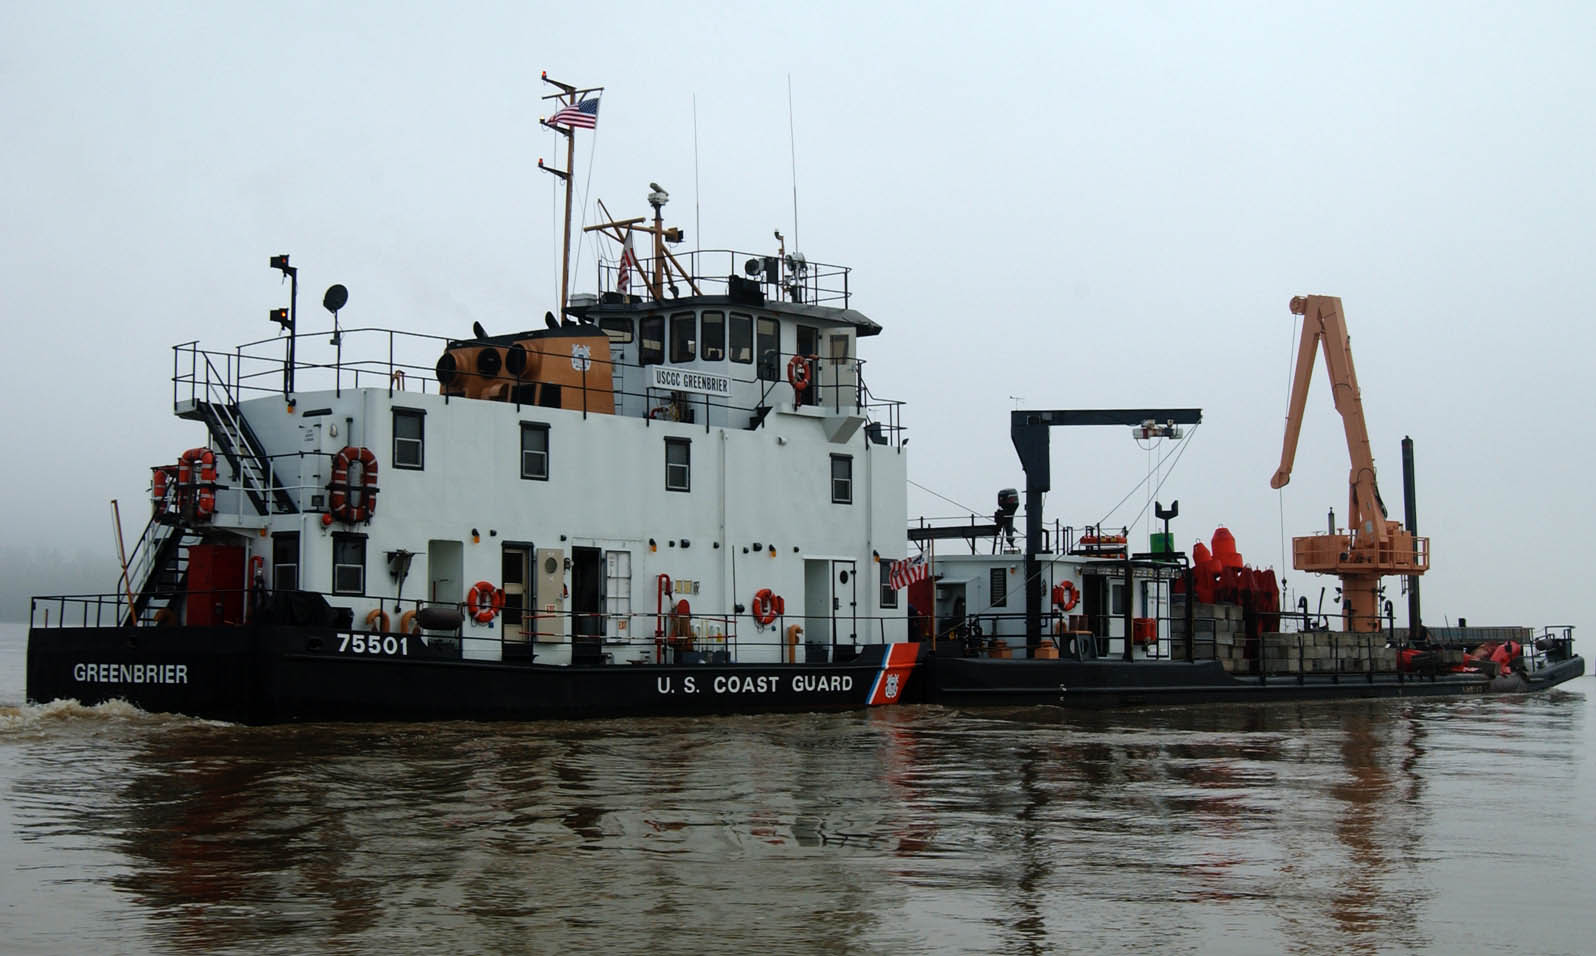 uscgc greenbrier wlr 75501 wikiwand